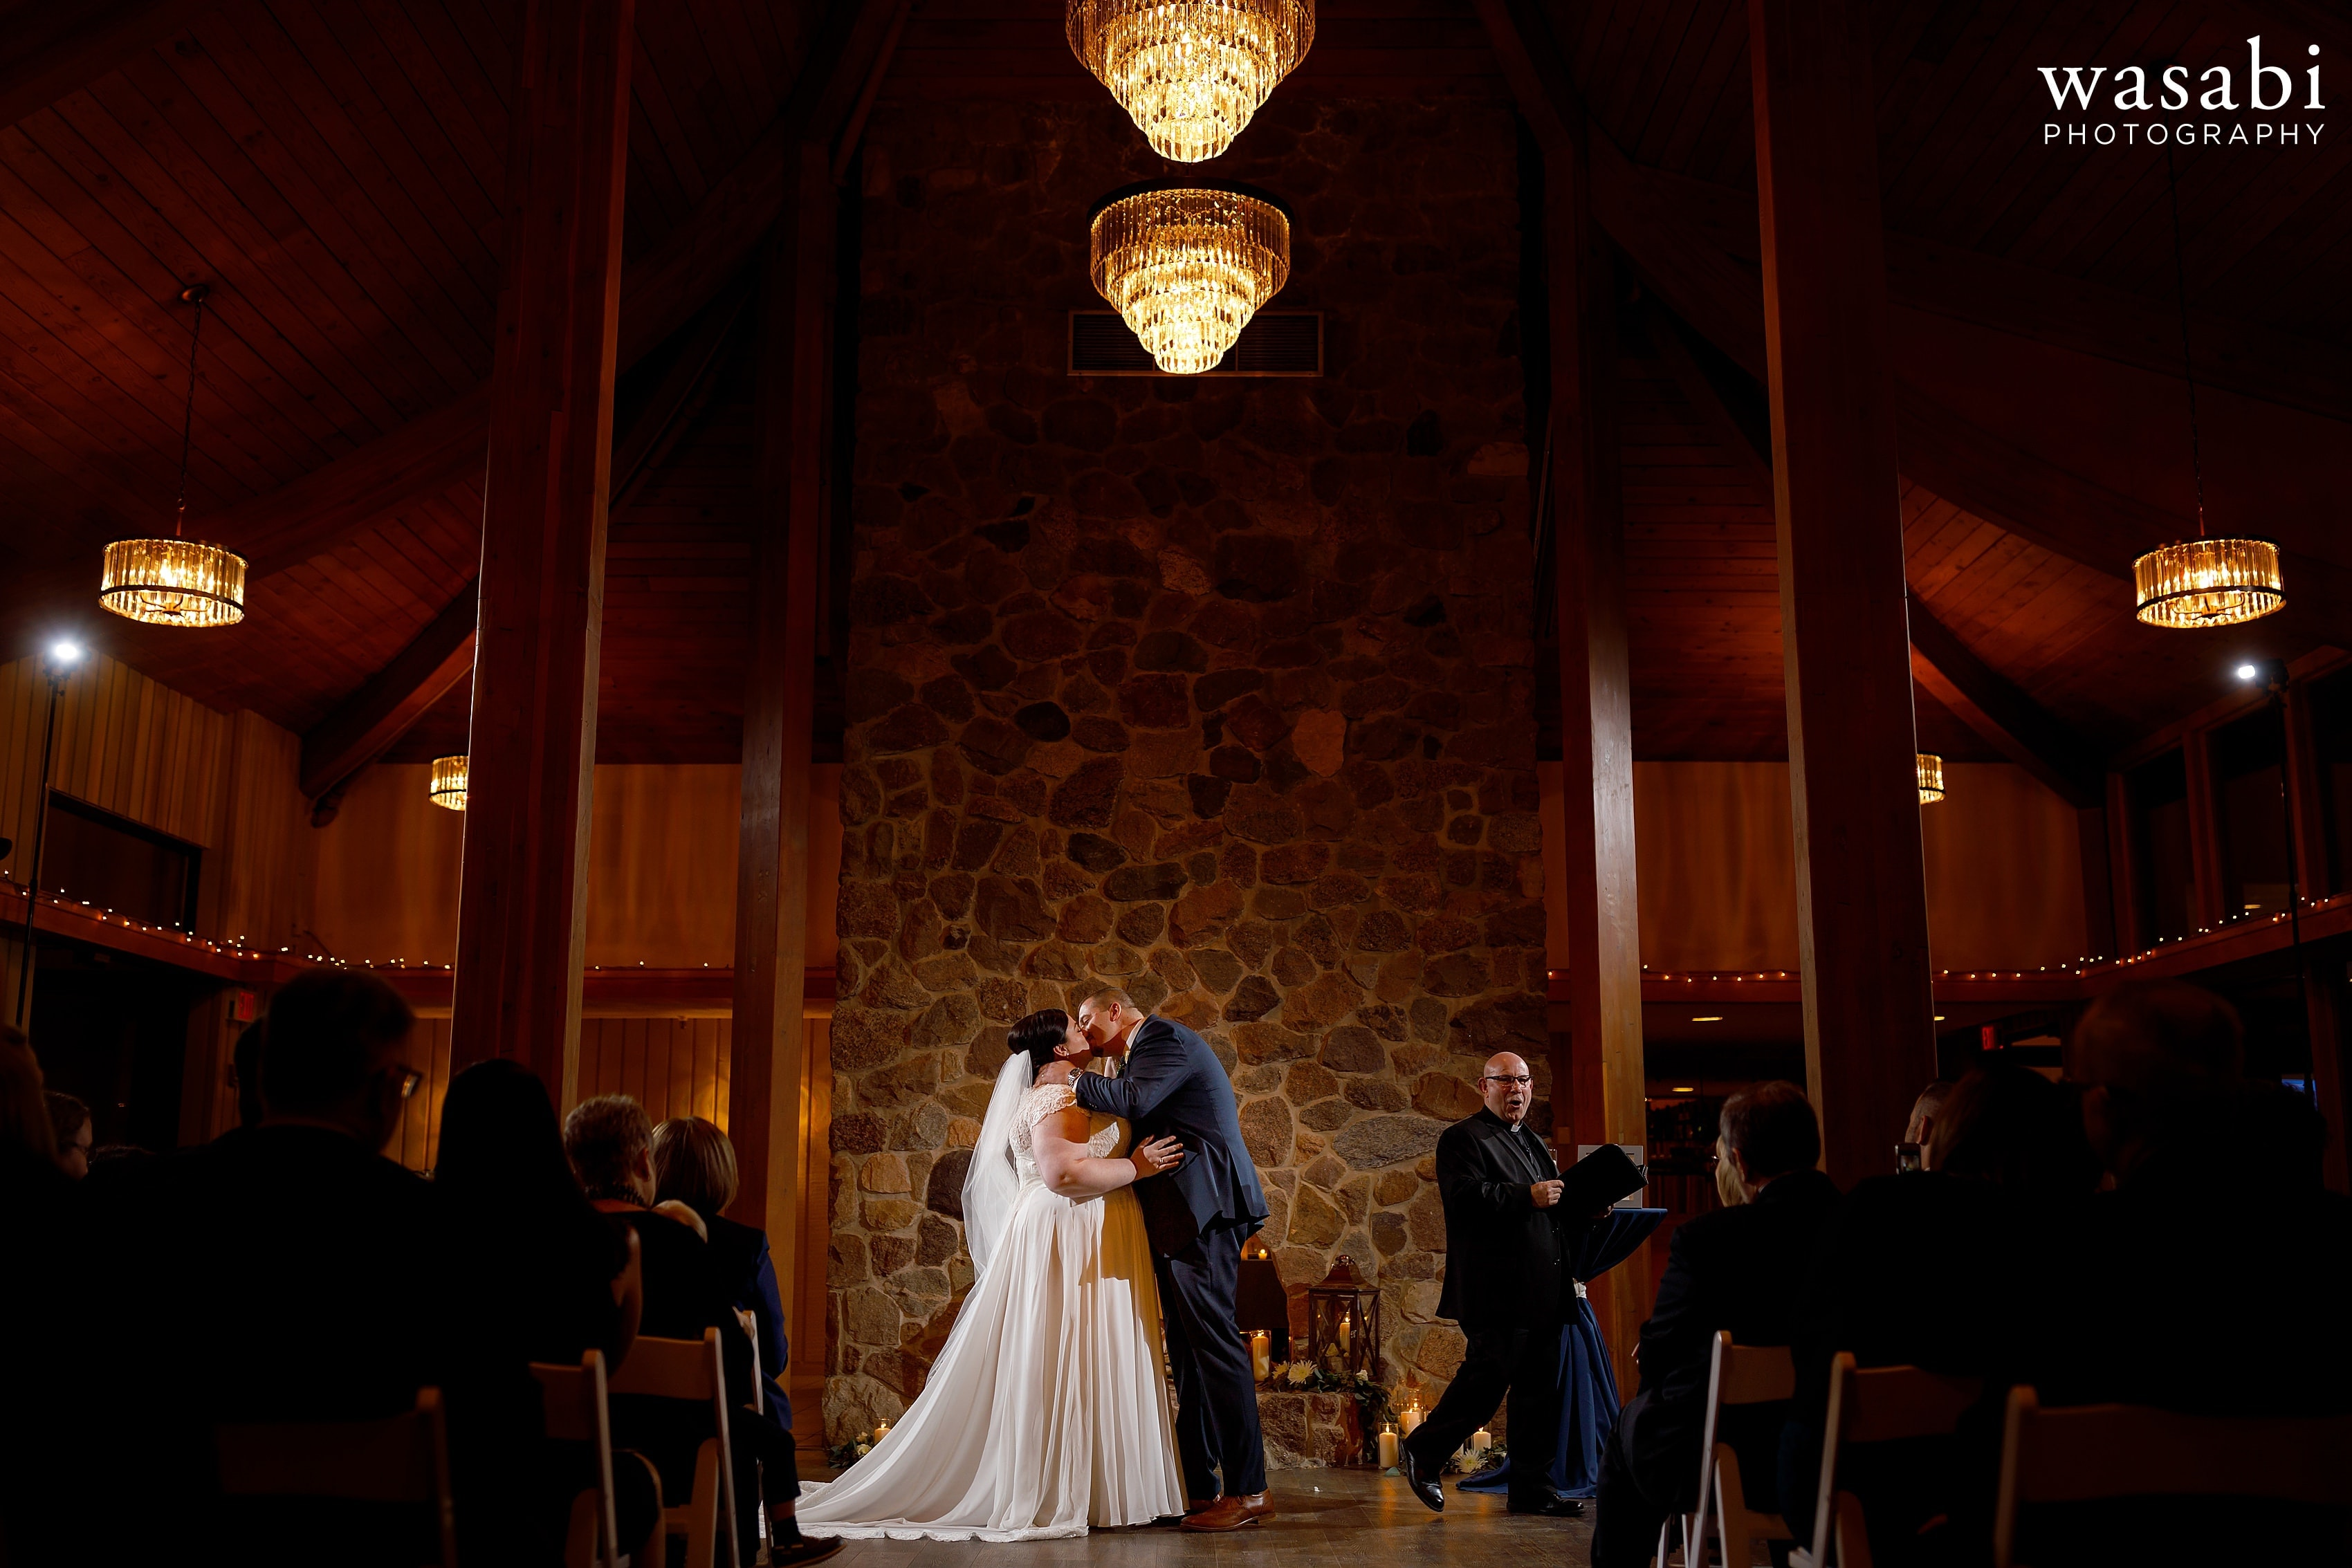 wide angle photo showing venue with bride and groom's first kiss during wedding ceremony at Oak Brook Bath and Tennis Club